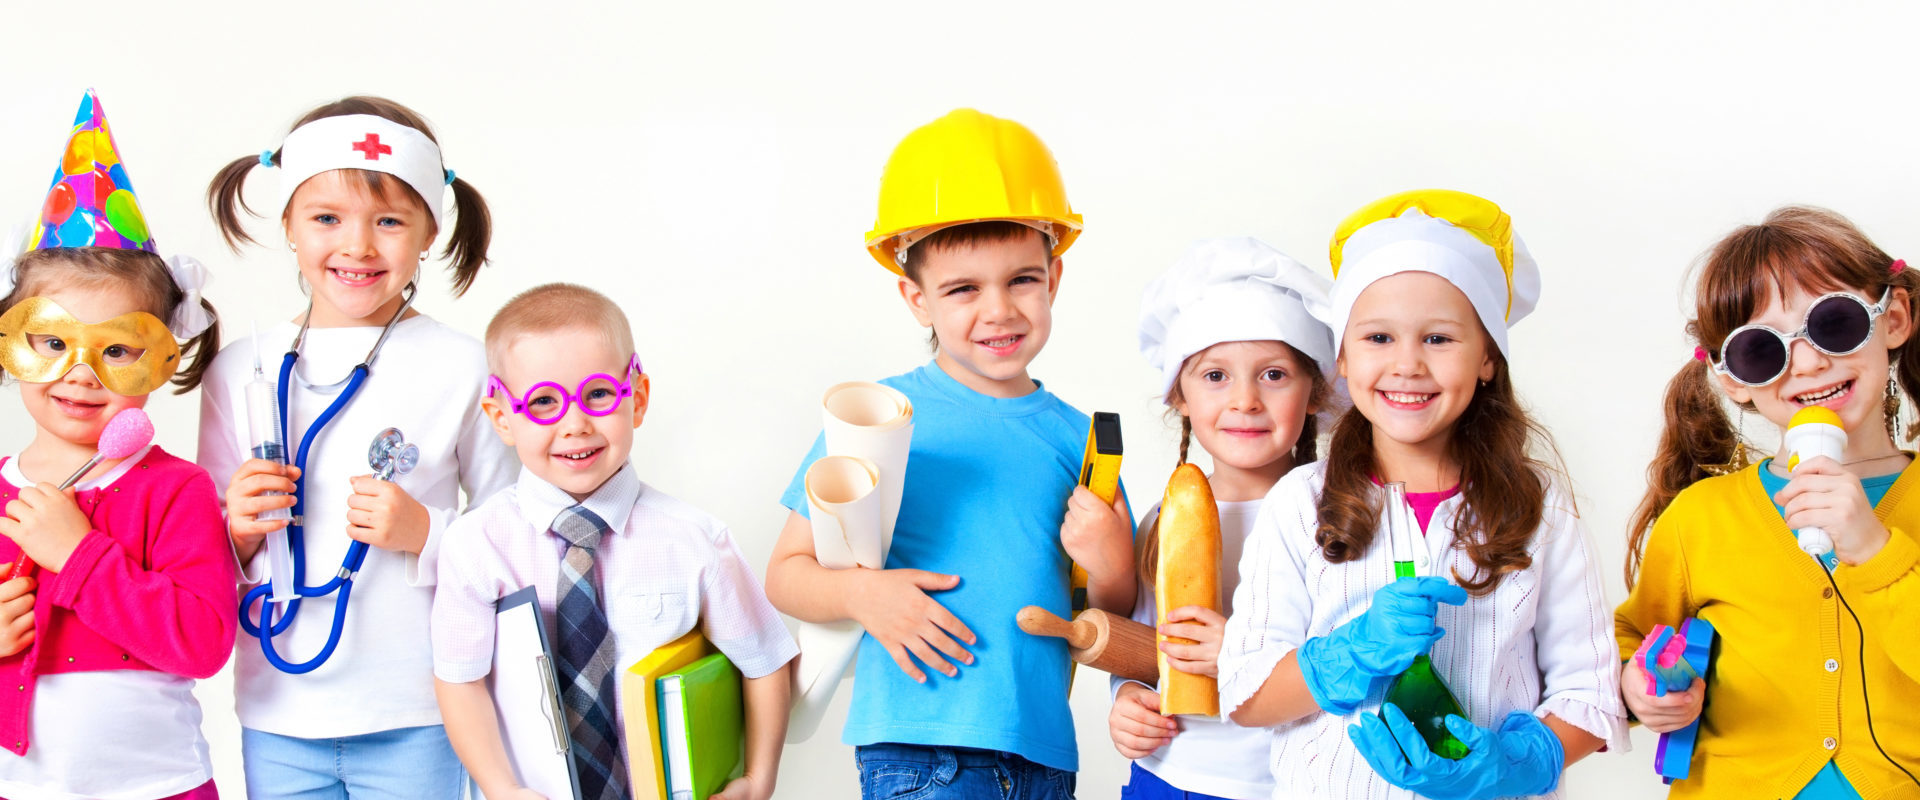 Group of seven children dressing up as professions